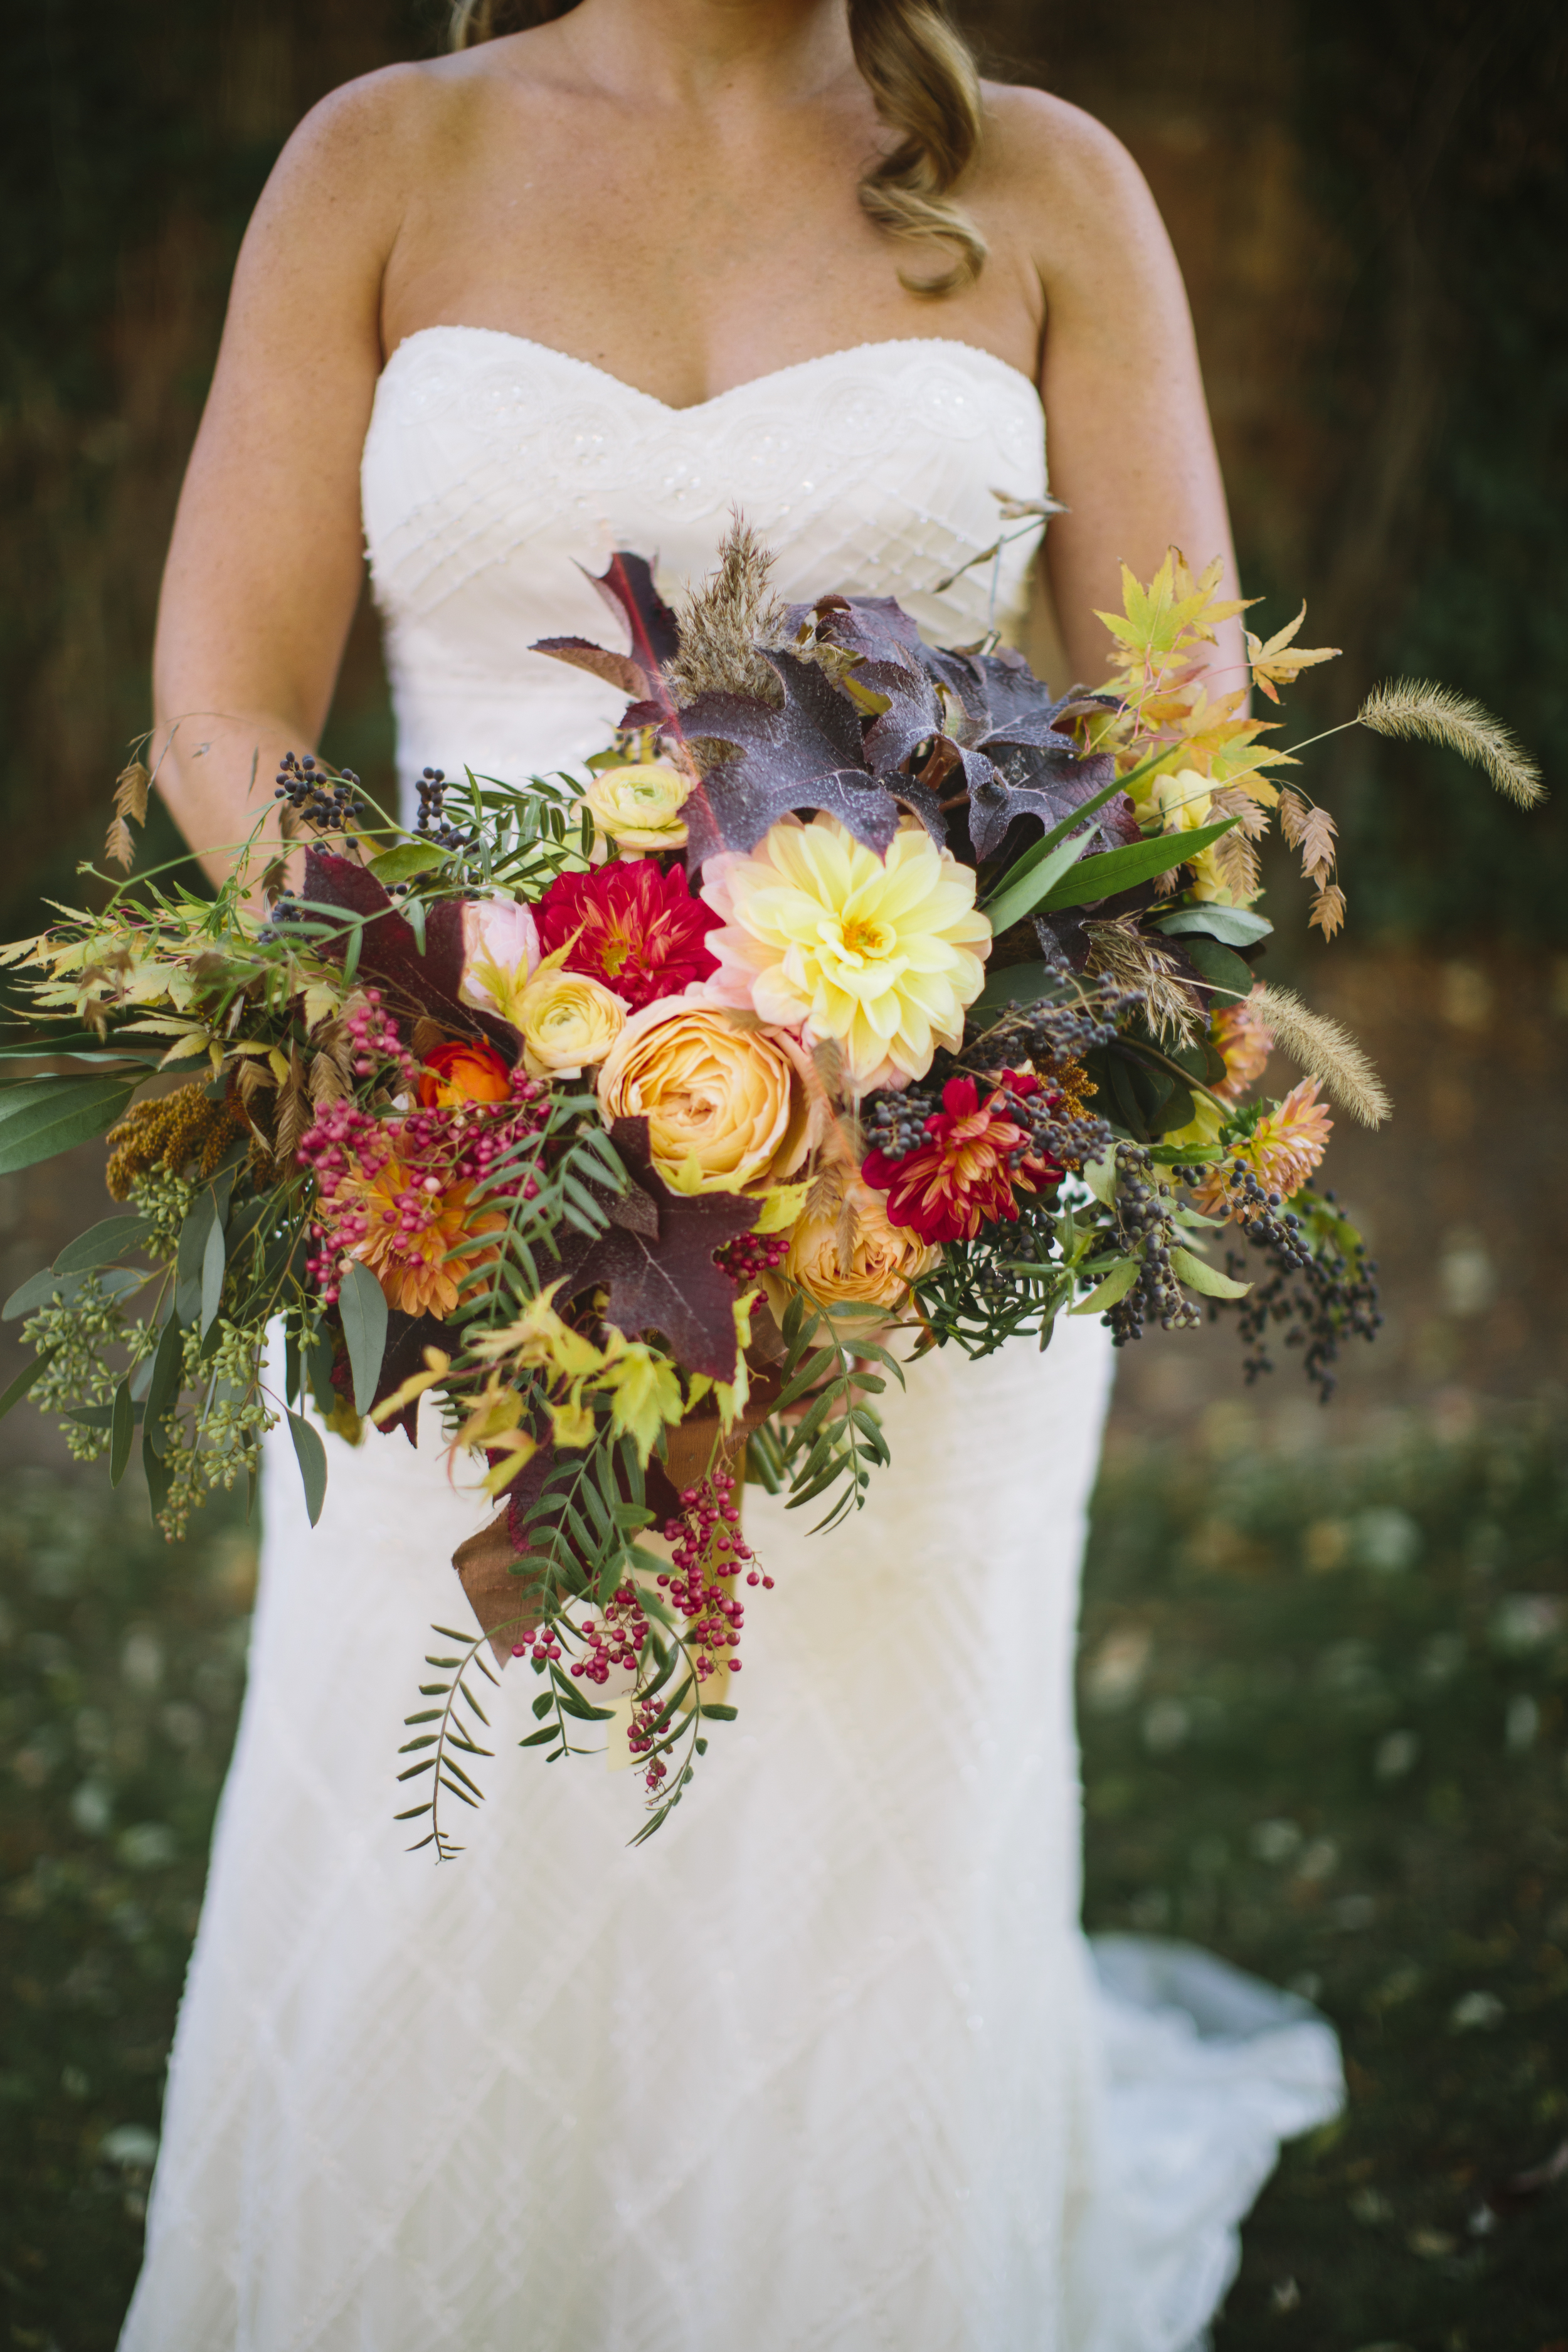 Emily's bridal bouquet was dramatic, wild, and lush. Dahlias, roses, leaves, eucalyptus, berries, ranunculus and various elements of greenery came together in this amazing combination to create one of our most memorable bouquets to date.